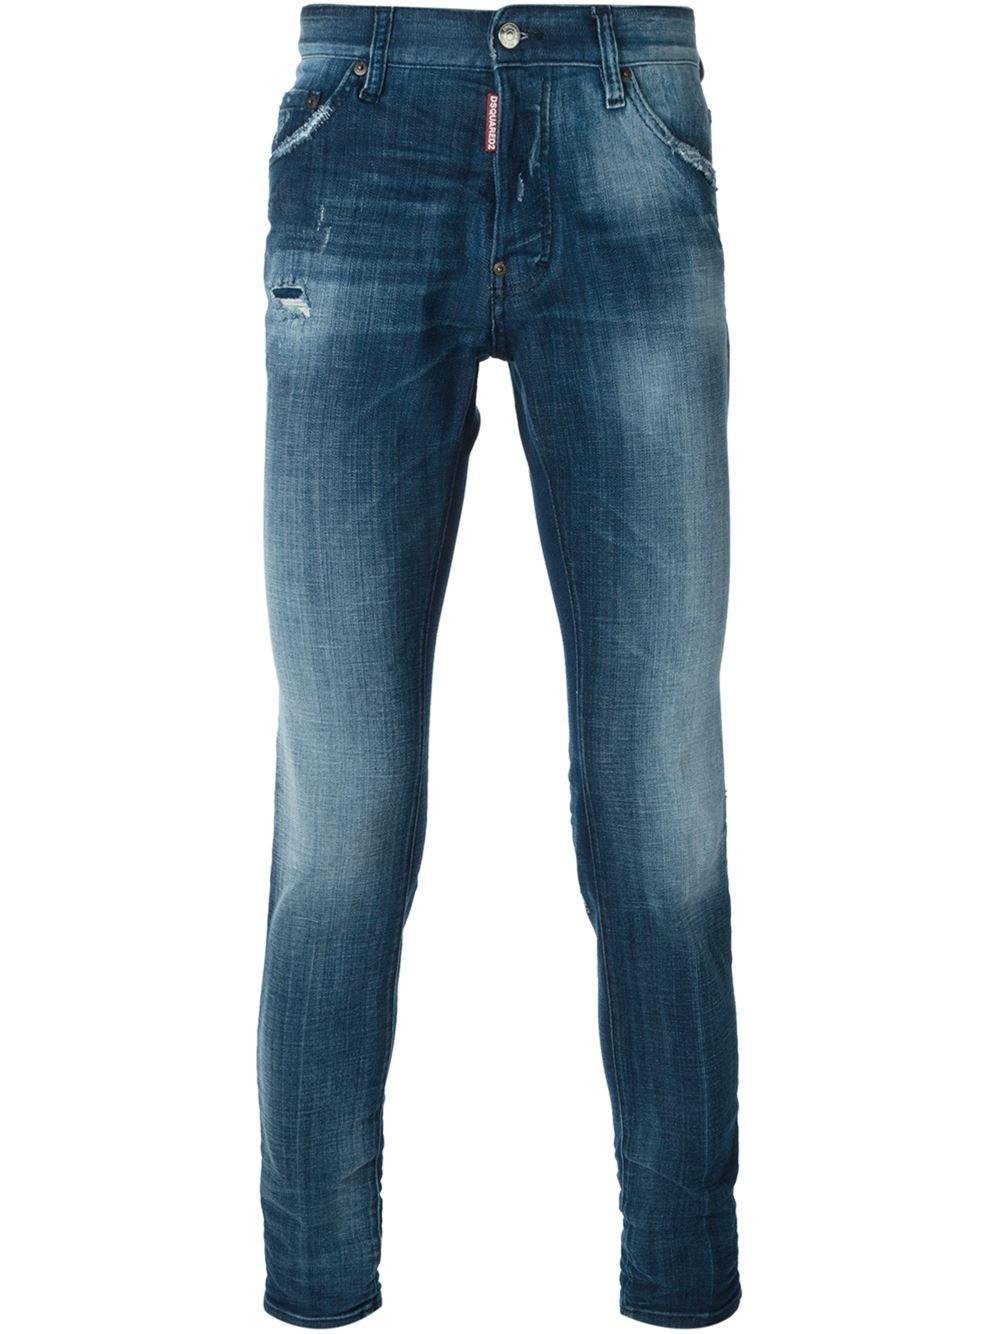 Popular cool skinny jeans for men of Good Quality and at Affordable Prices You can Buy on AliExpress. We believe in helping you find the product that is right for you.